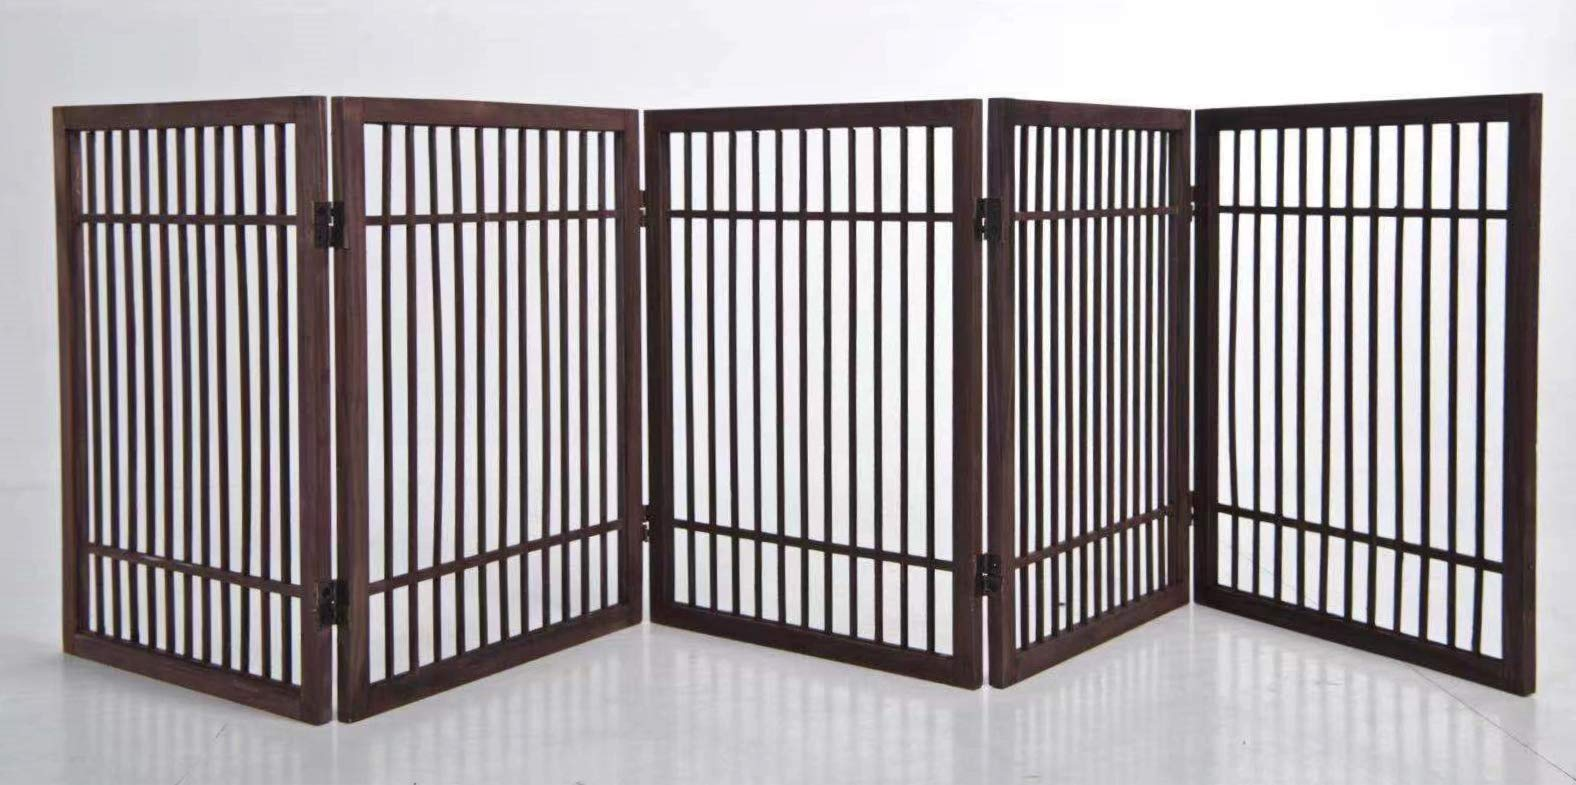 5 Panel Solid Wood Folding Pet Dog Gate Strong and Durable with 2 Way Hinges